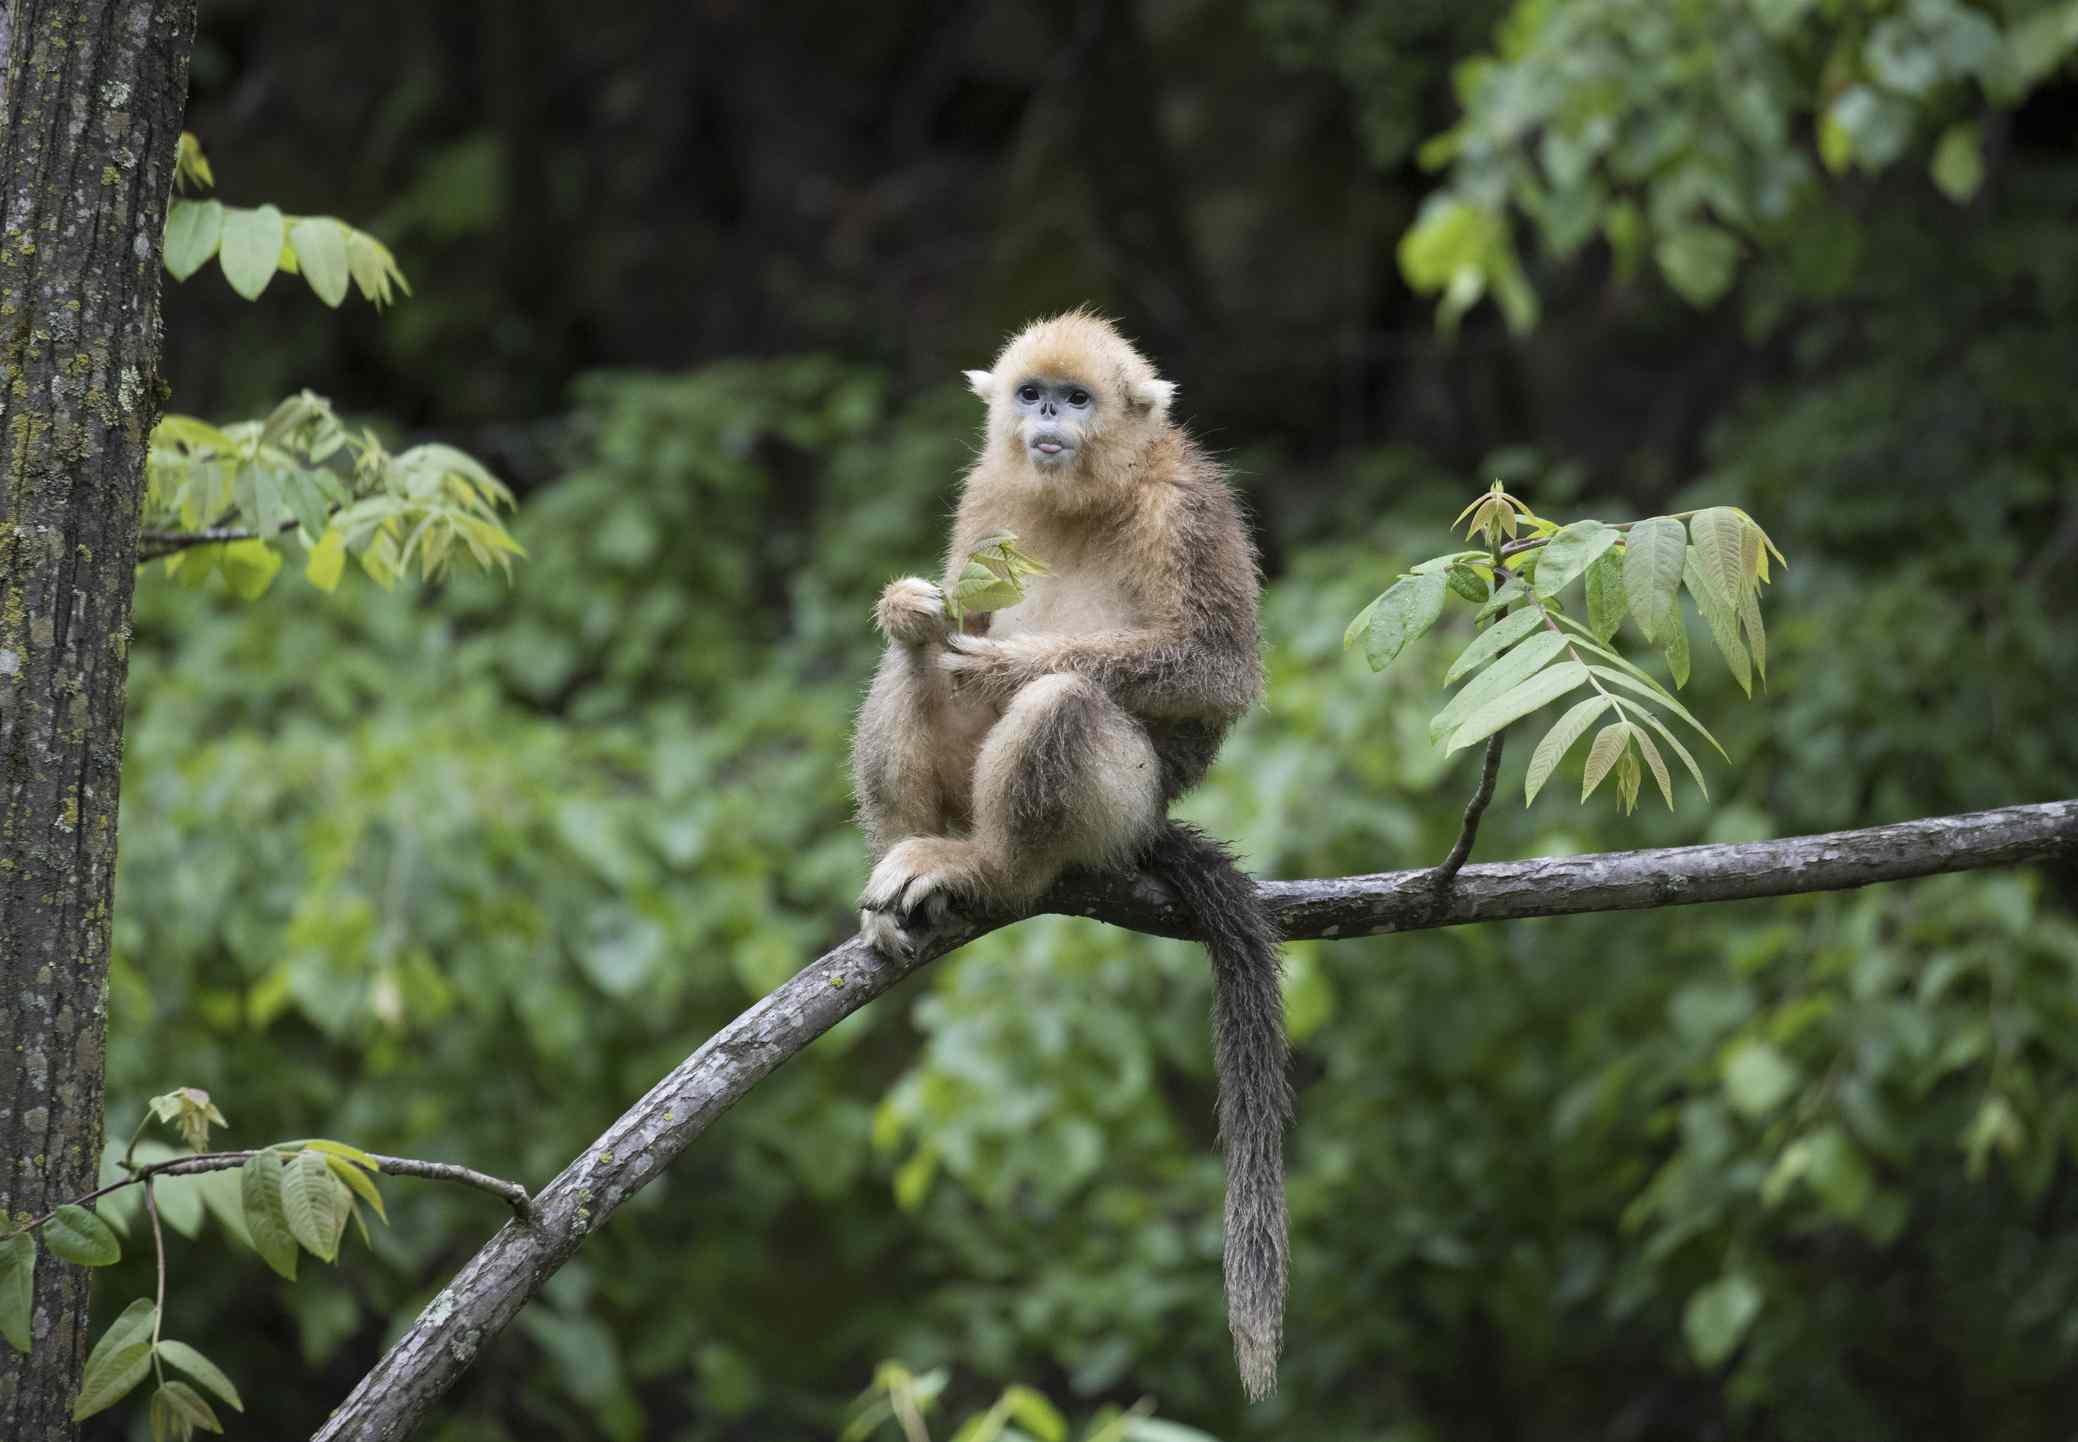 A golden snub nosed monkey sitting on a branch surrounded by green leaves and trees.